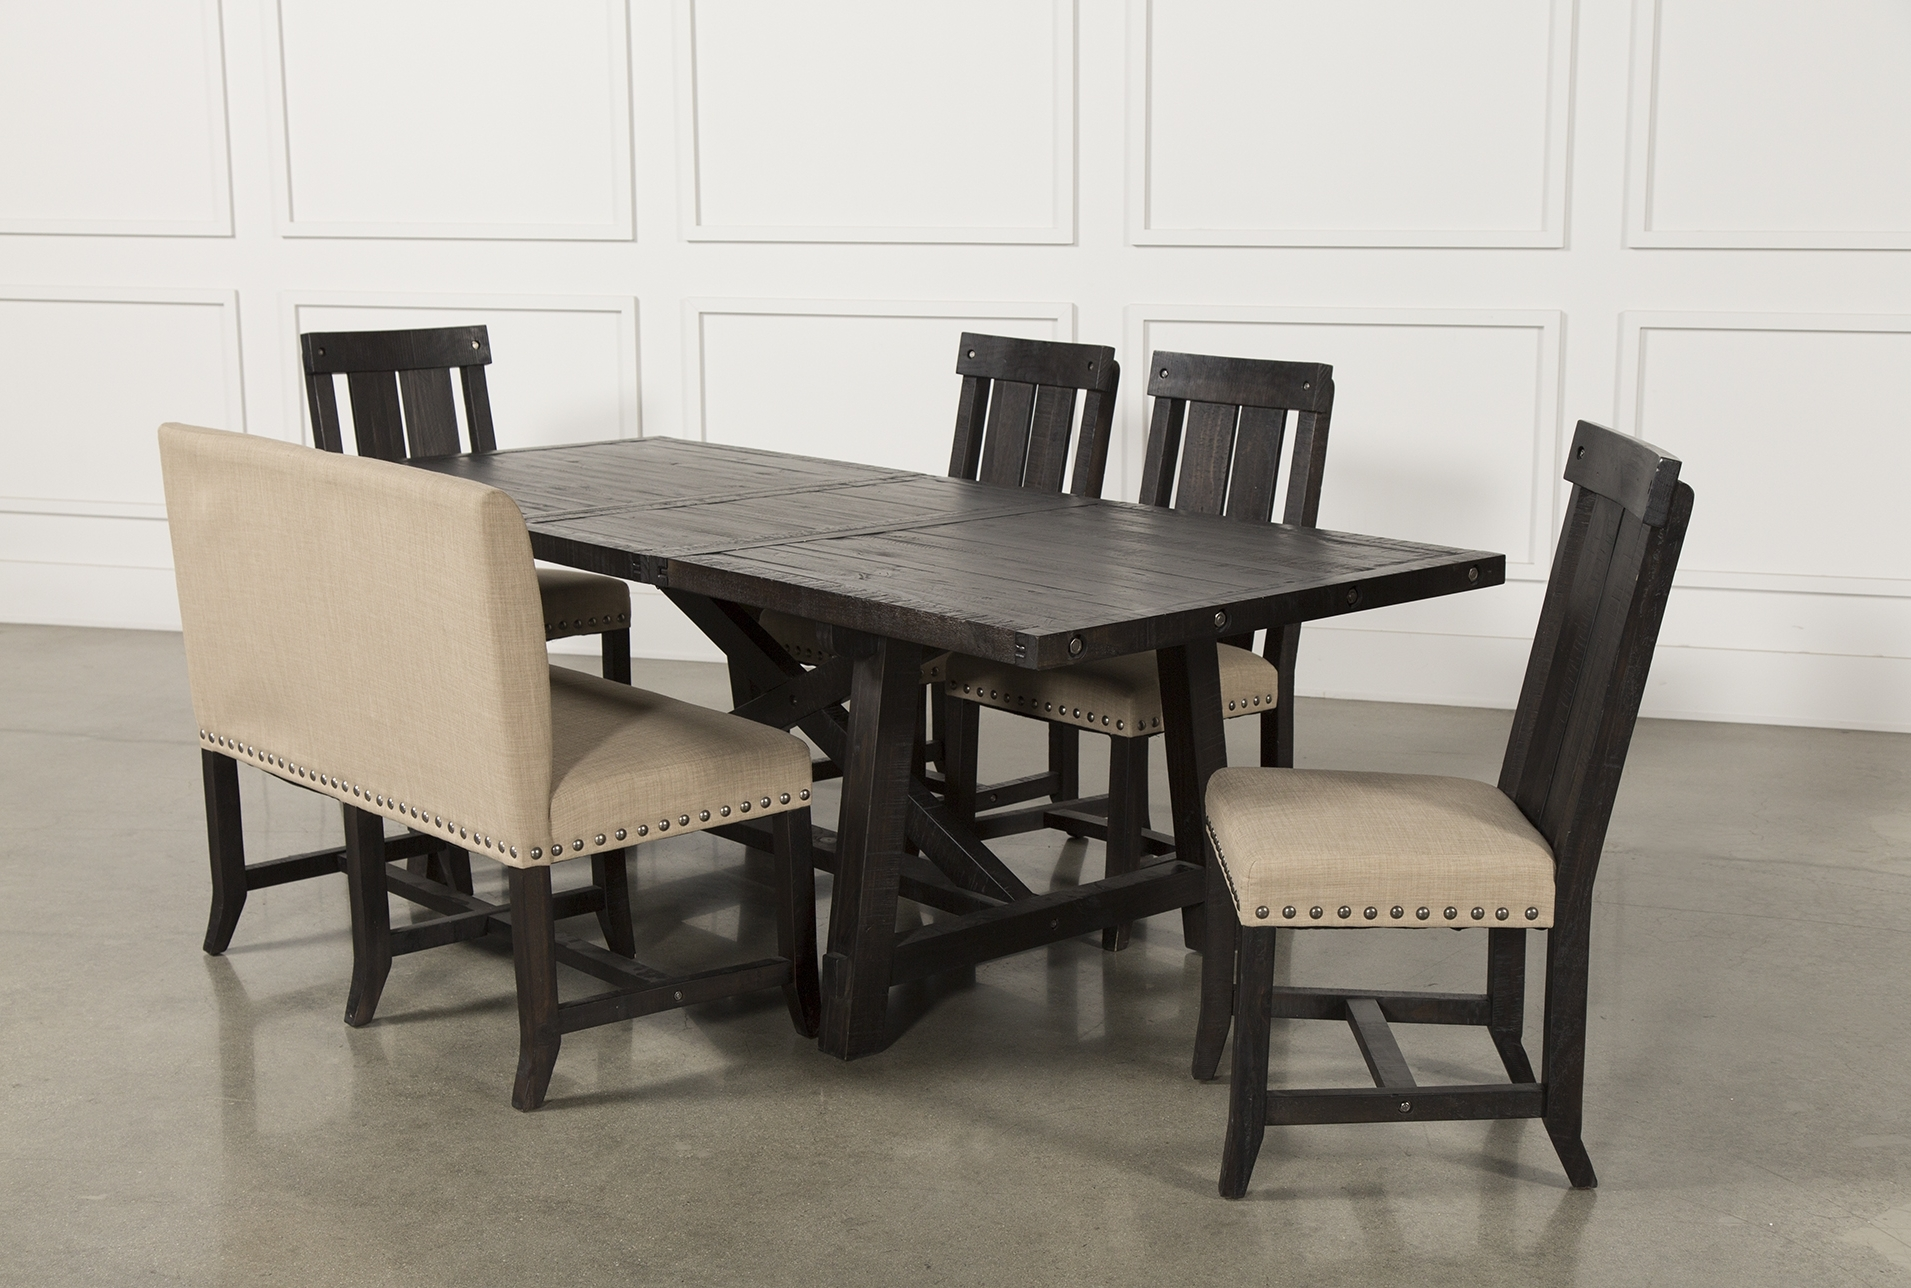 Products With Jaxon Grey 6 Piece Rectangle Extension Dining Sets With Bench & Wood Chairs (View 4 of 25)